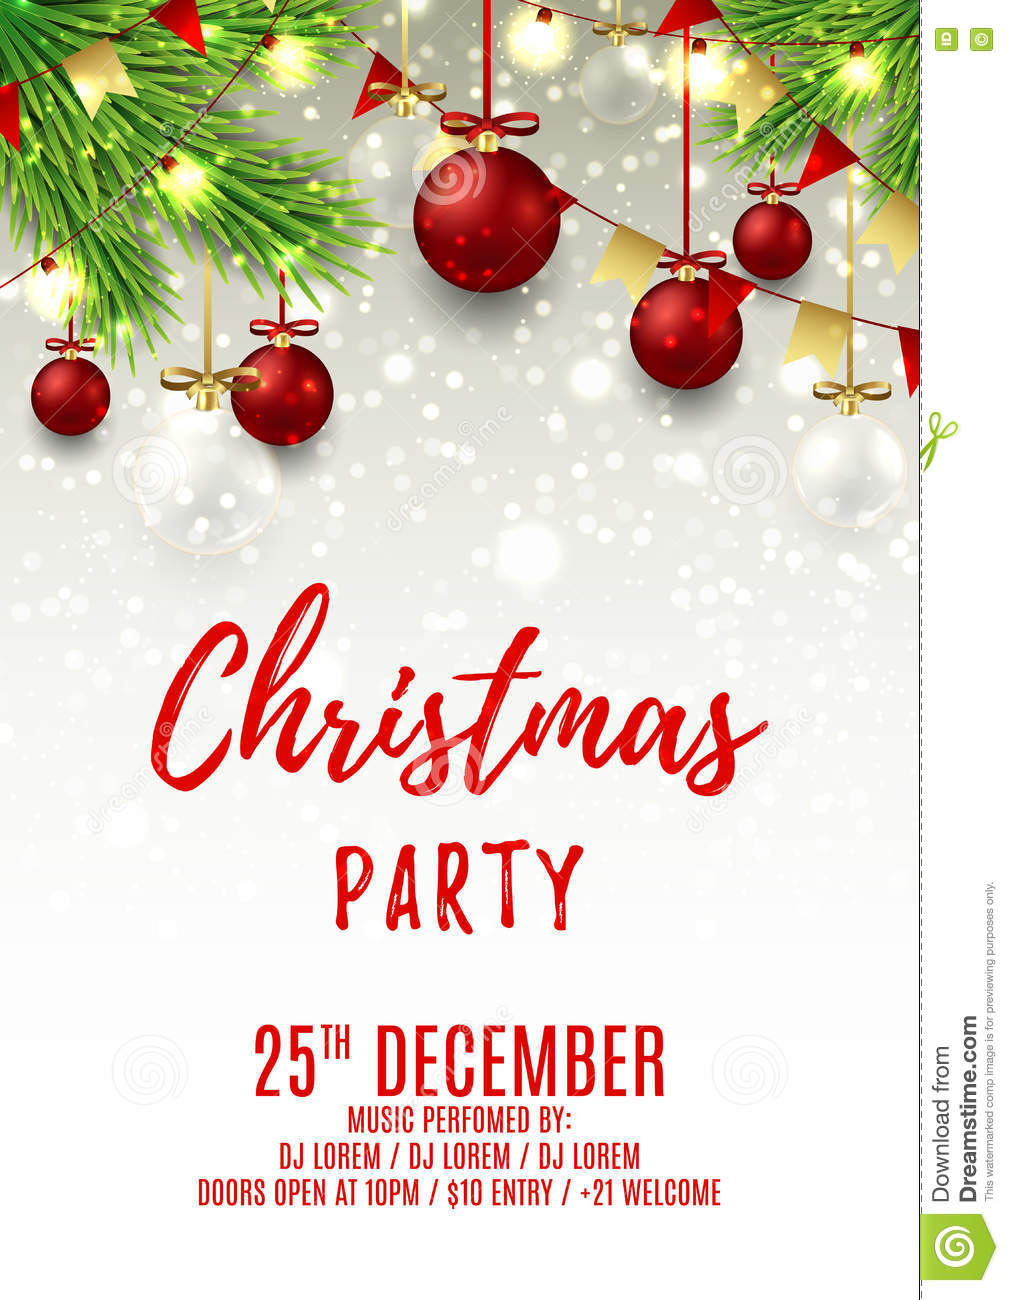 Christmas Party Flyer.Christmas Party Flyer Template Stock Vector Illustration